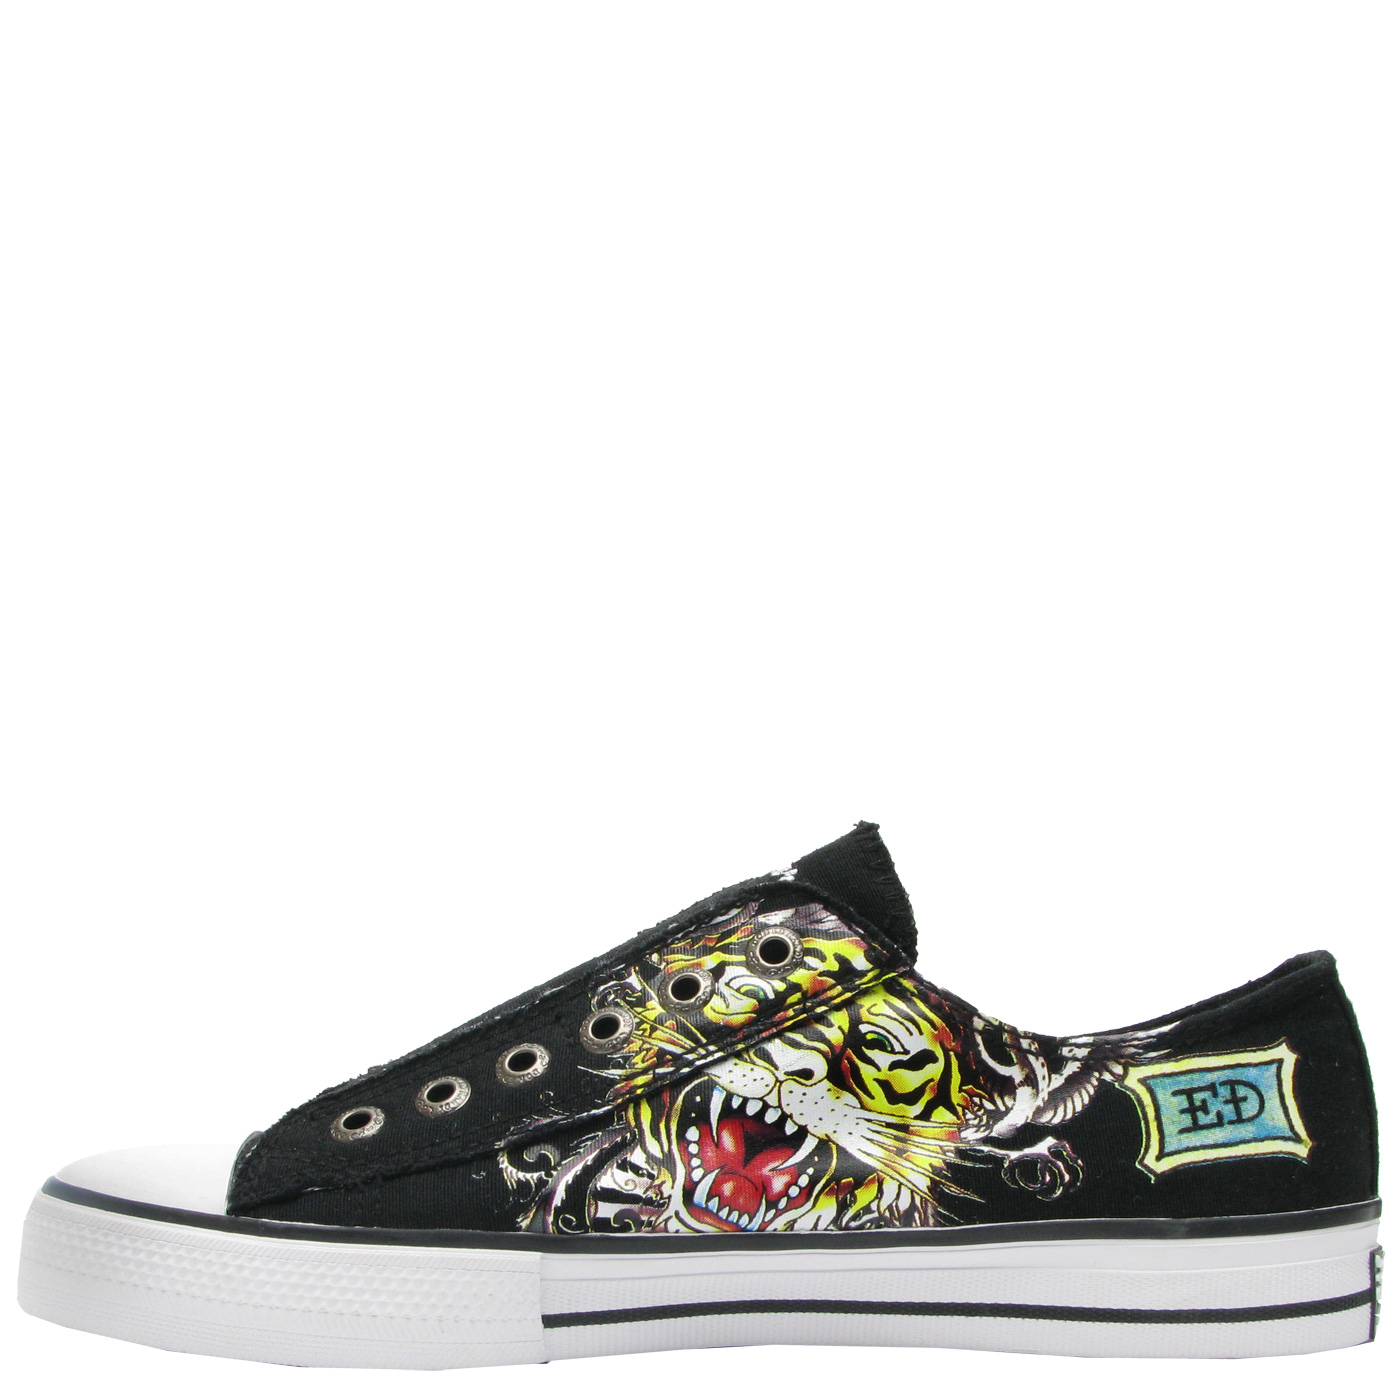 Ed Hardy Lowrise Bangkok Shoe for Women - Black